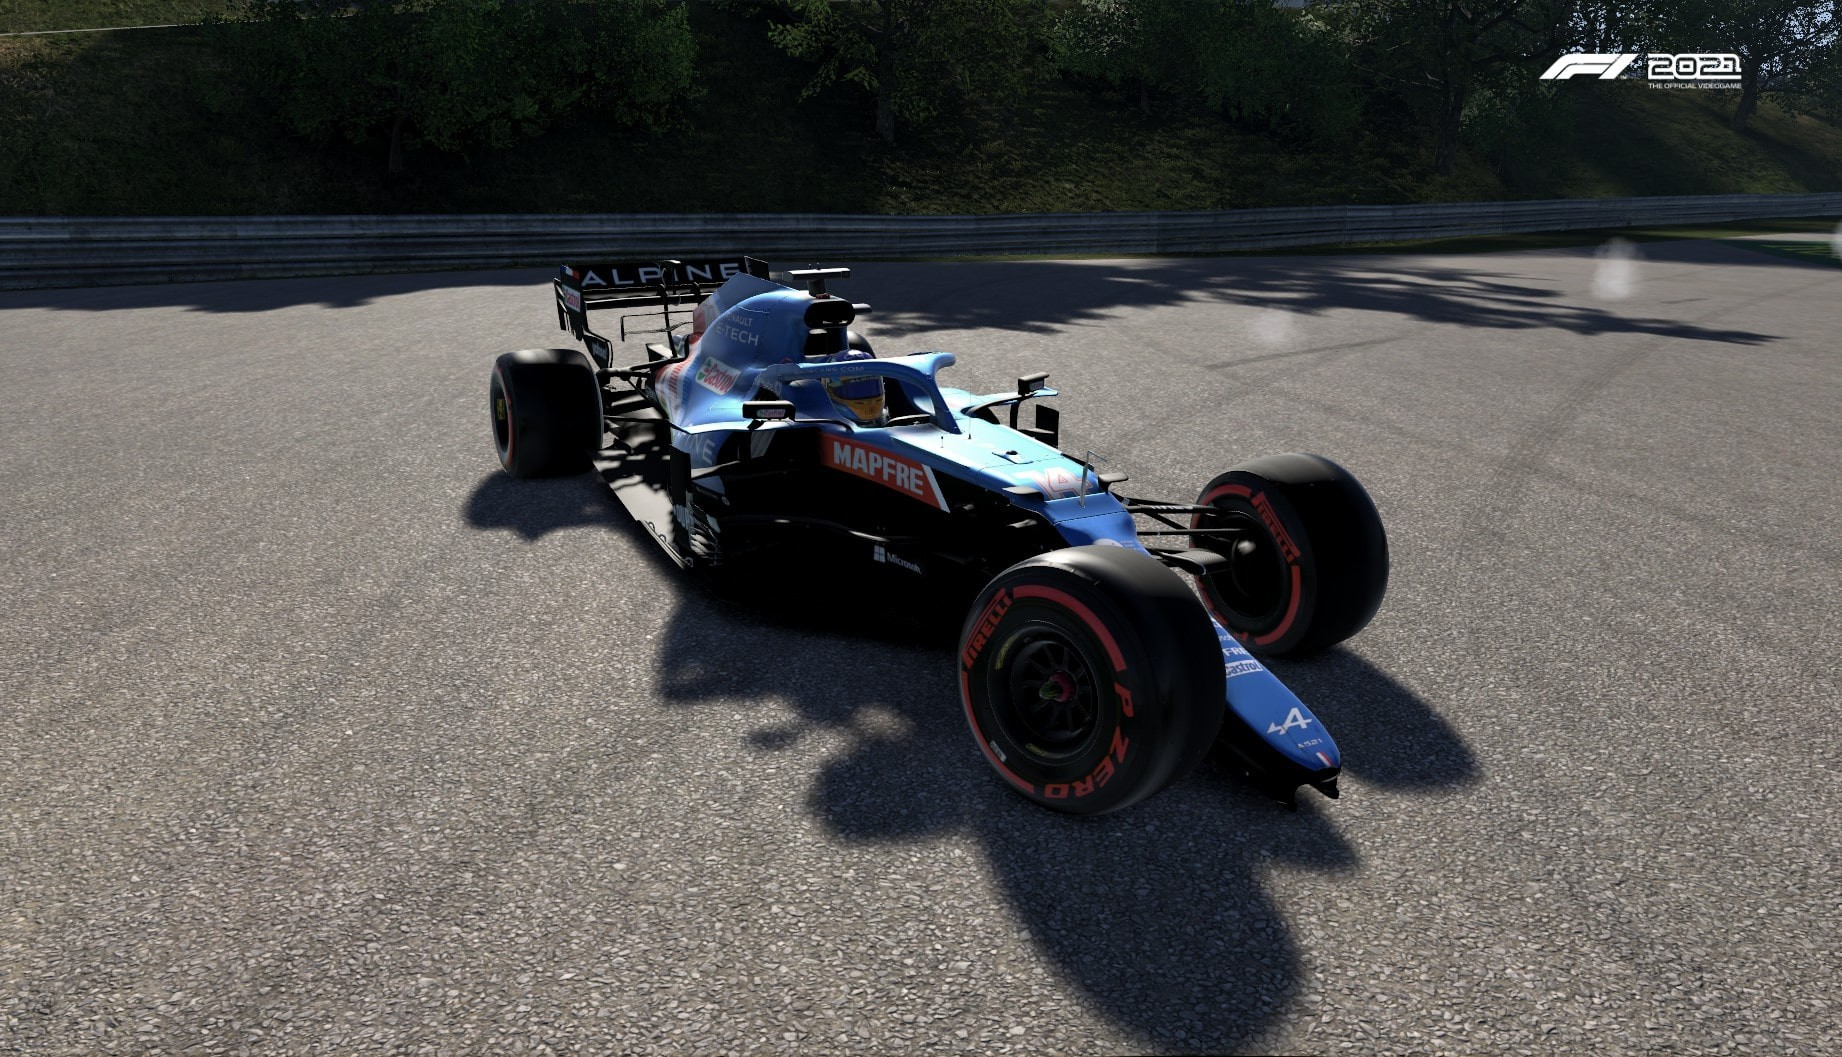 An image of an Alpine having crashed and suffered terminal damage in F1 2021.